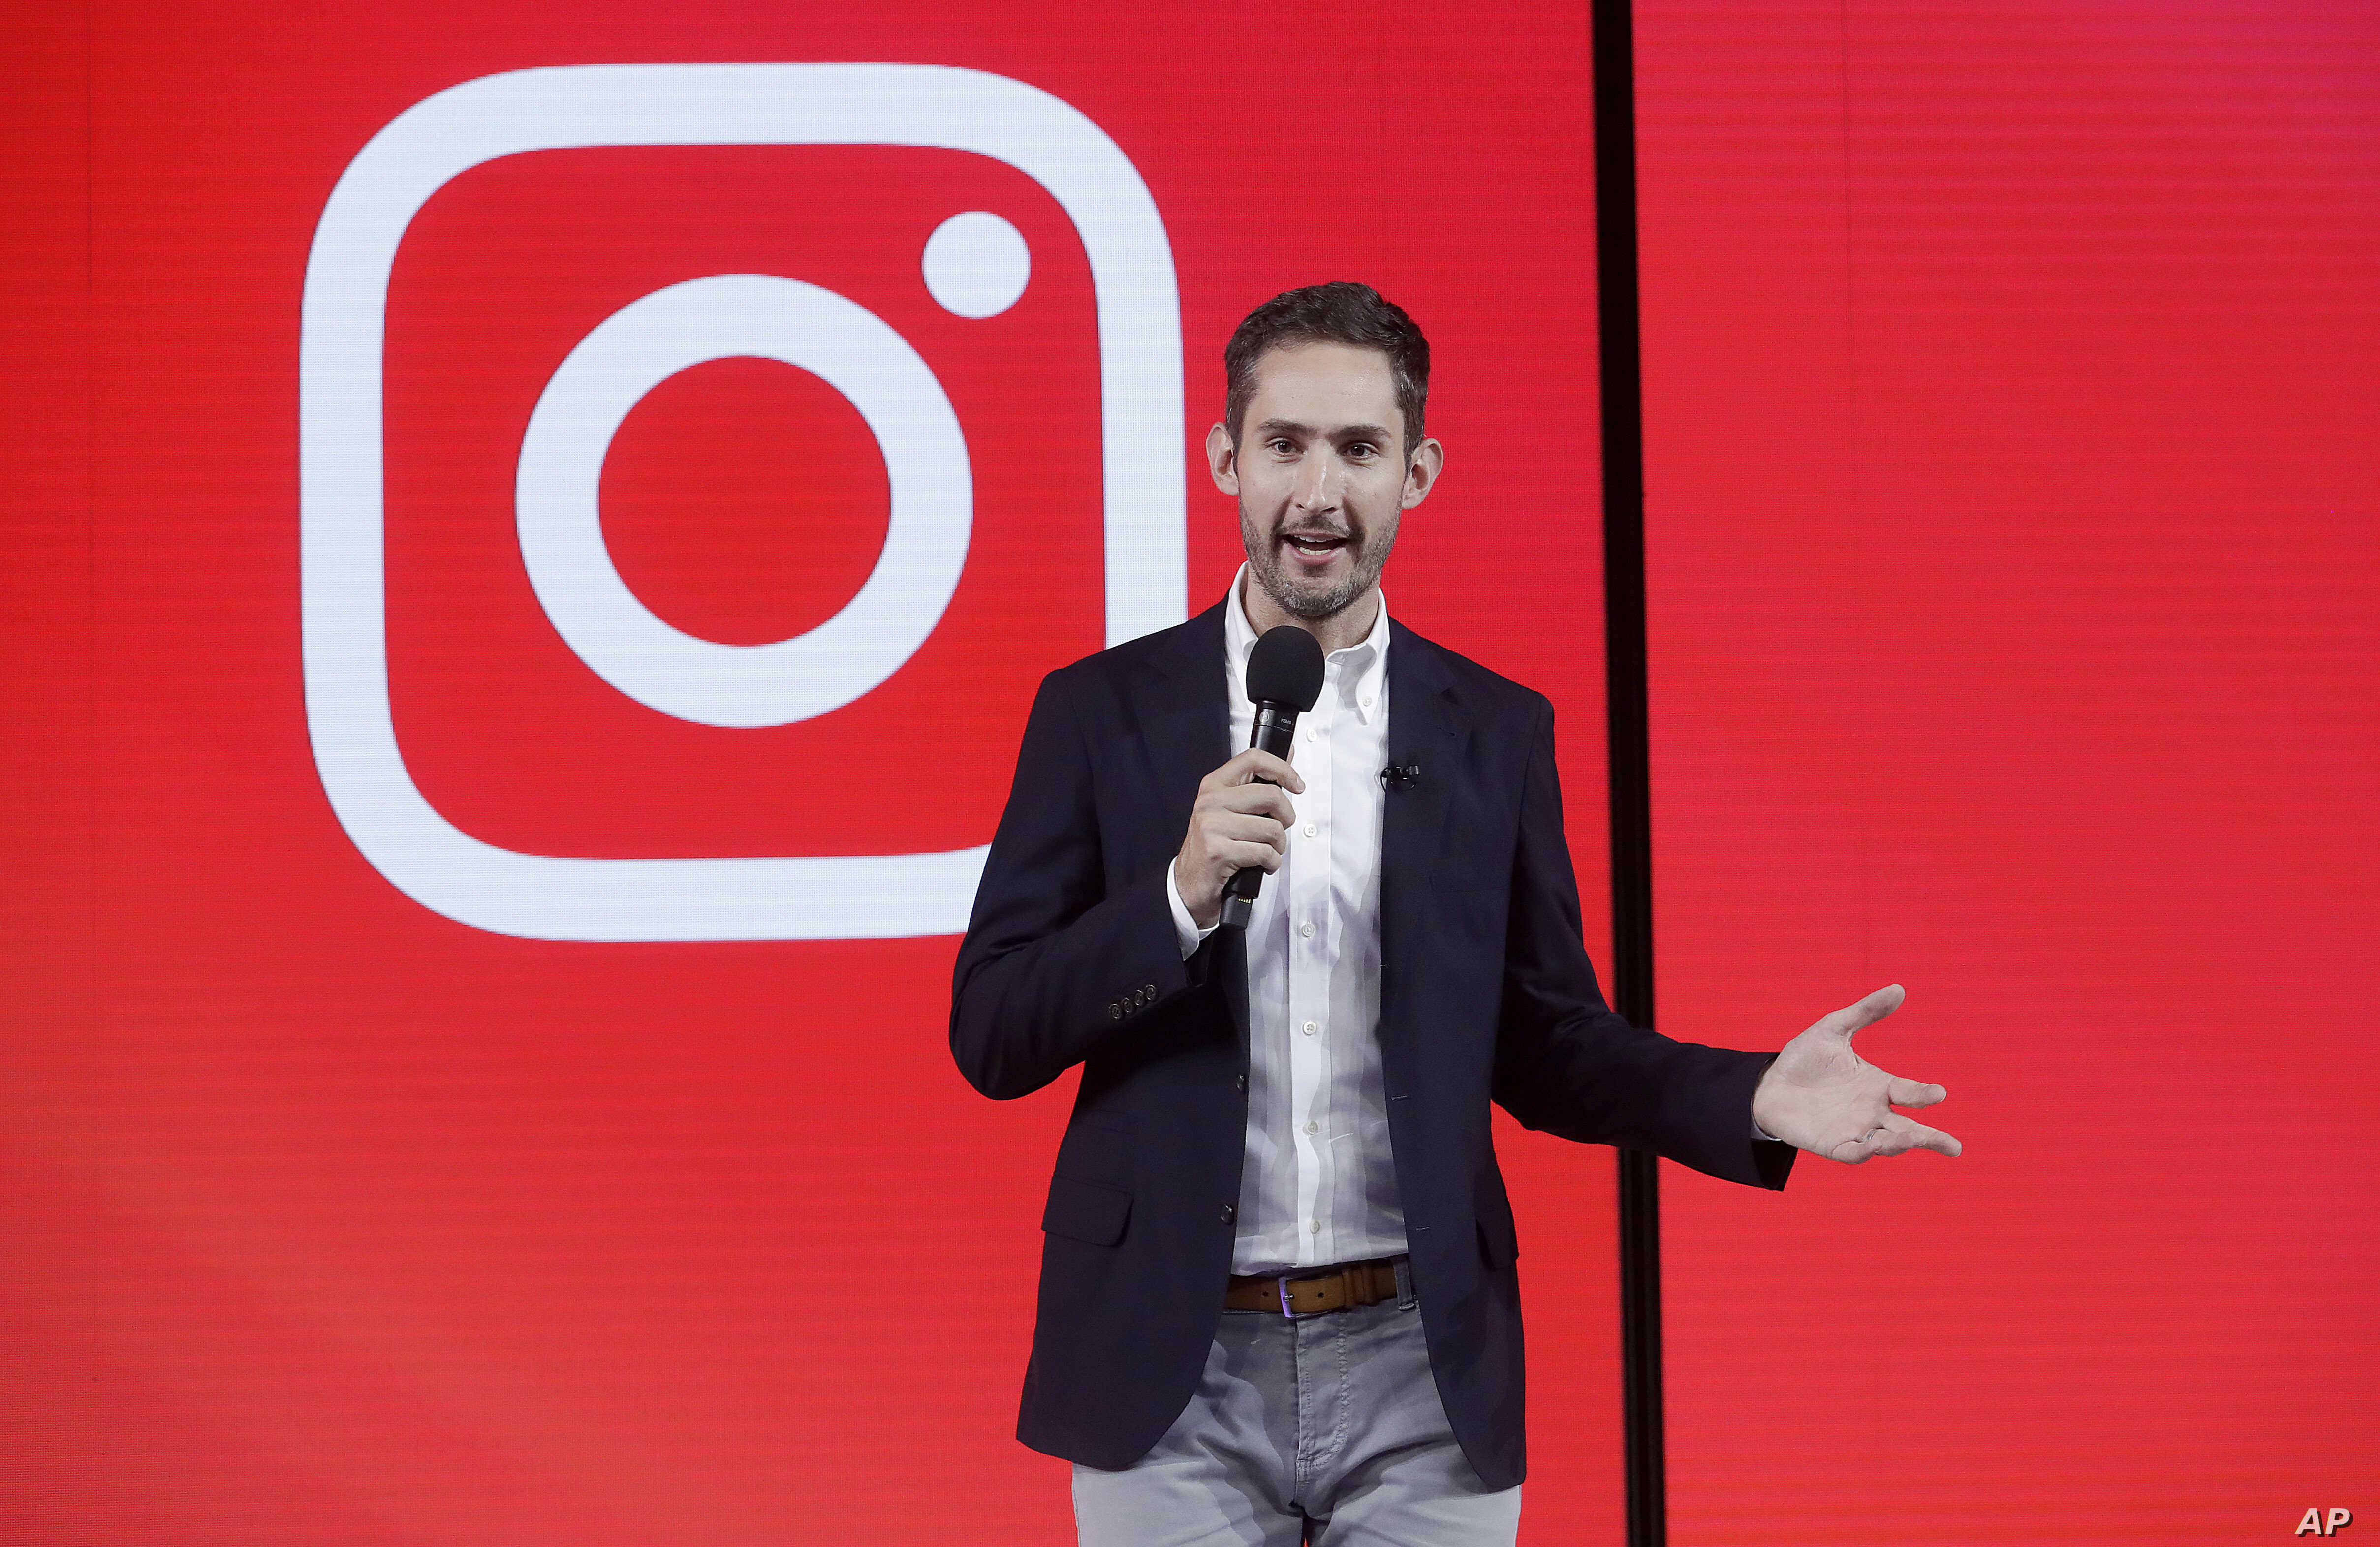 Into the Fold? What's Next for Instagram as Founders Leave   Voice